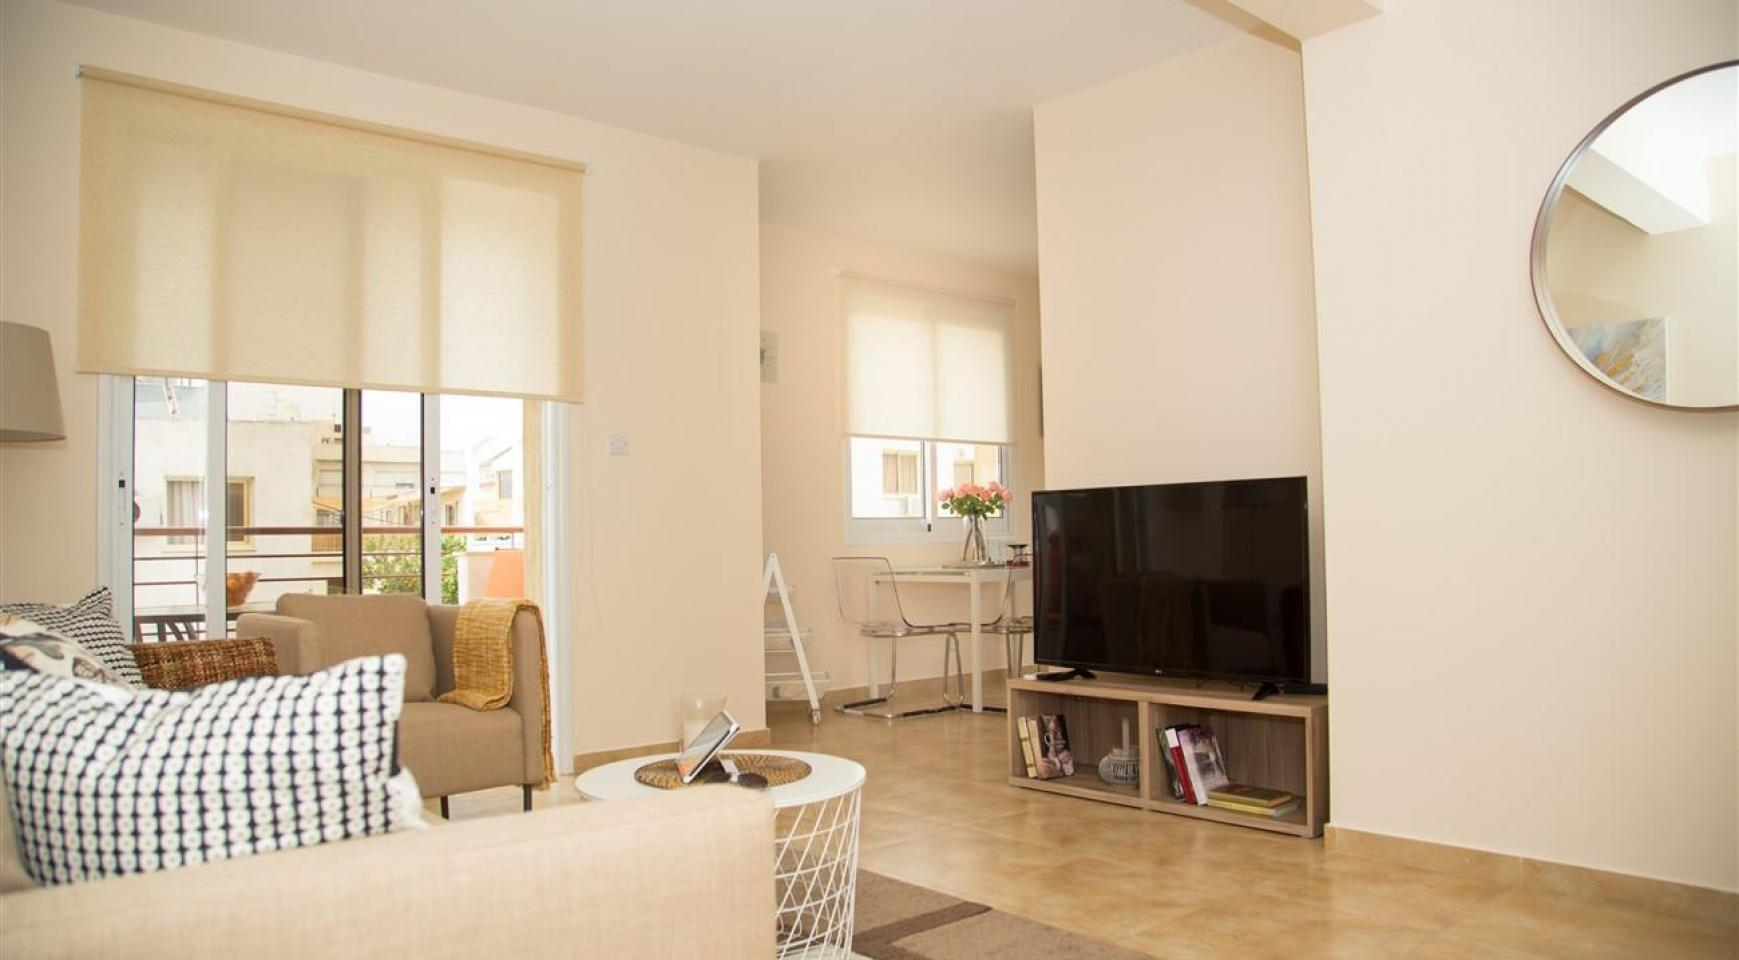 Luxury 2 Bedroom Apartment Frida 201 in the Tourist Area - 2